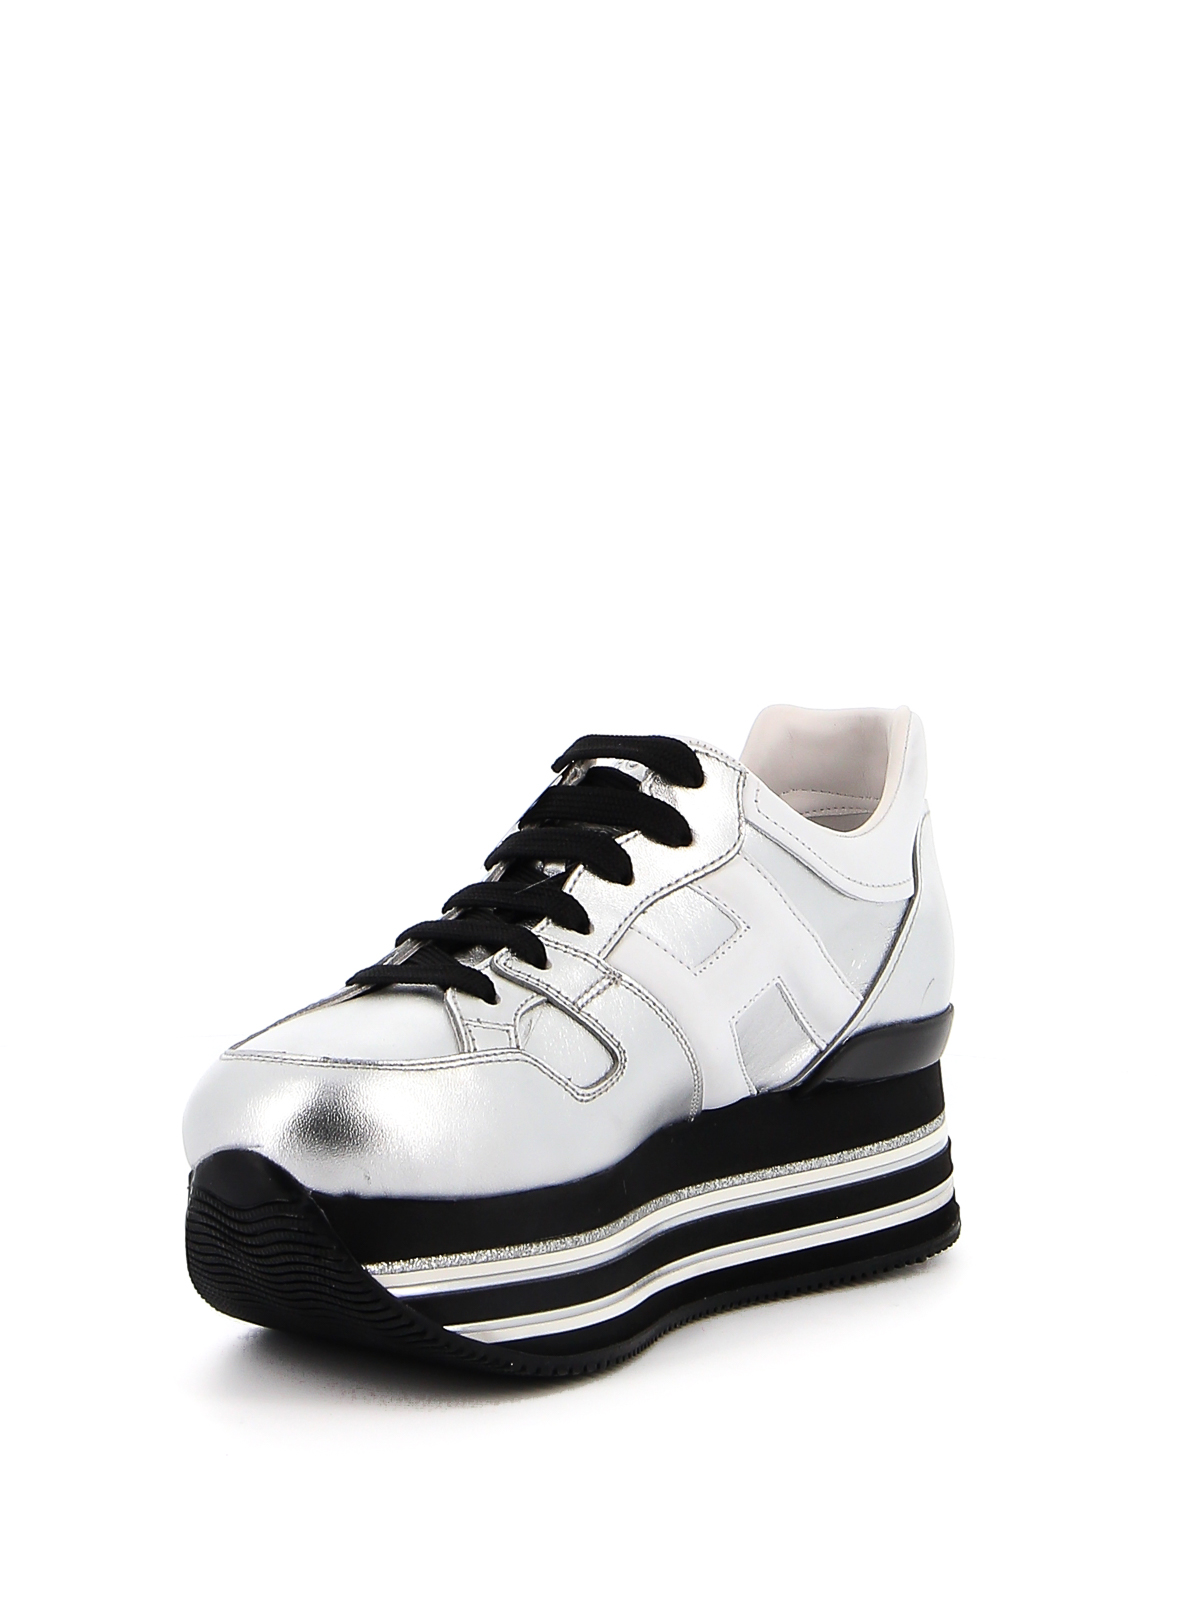 Trainers Hogan - Maxi Platform H222 leather sneakers ...